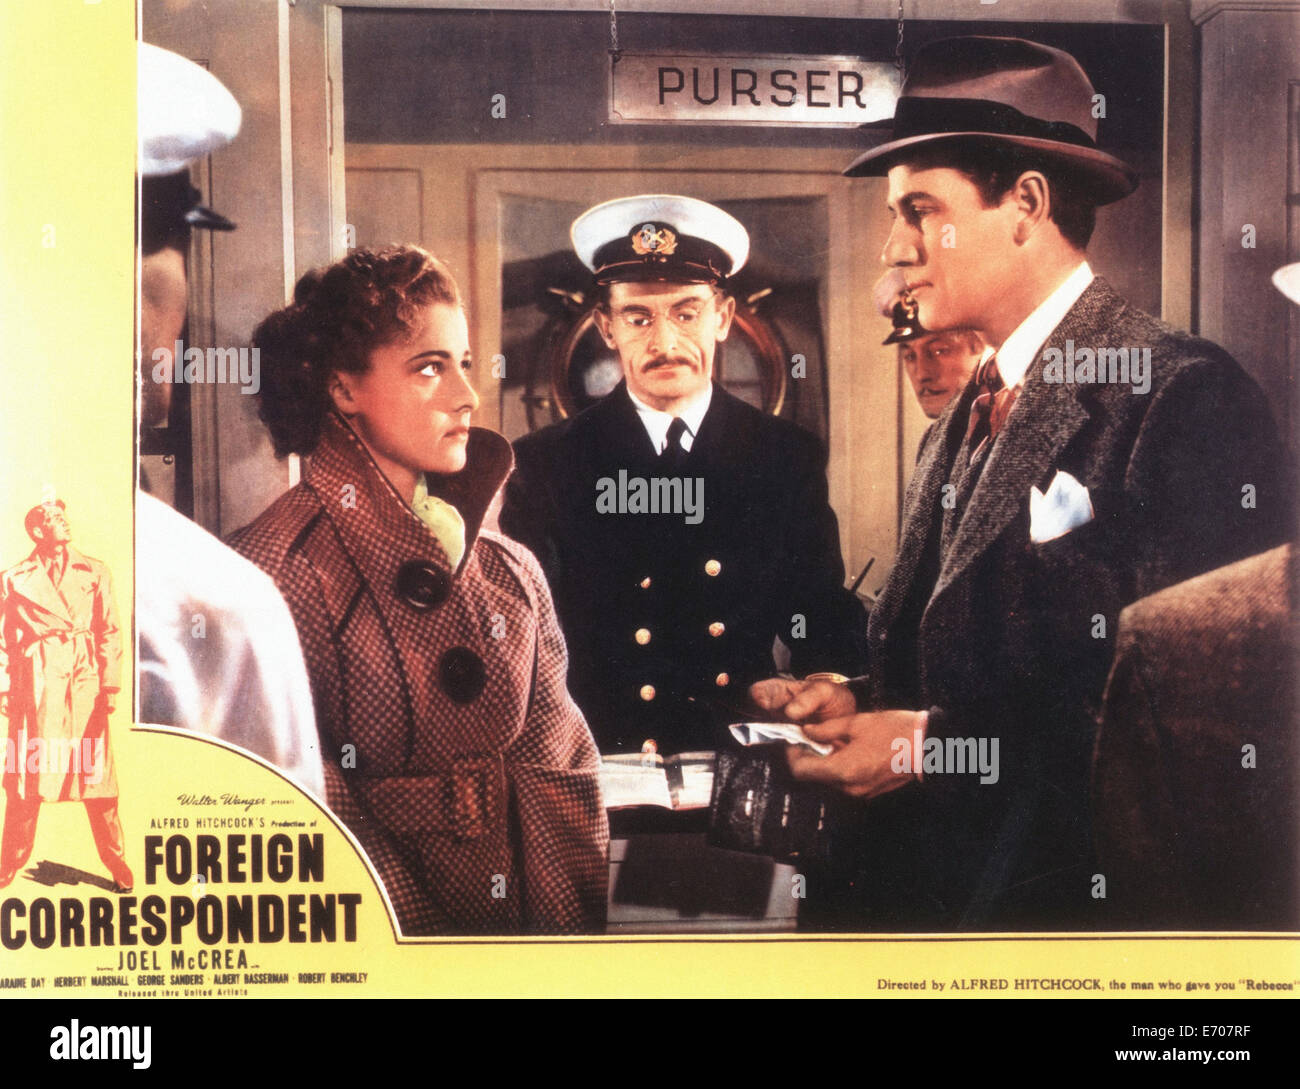 Foreign Correspondent - Lobby Card - Movie Poster - Director : Alfred Hitchcock  -  1940 - Stock Image